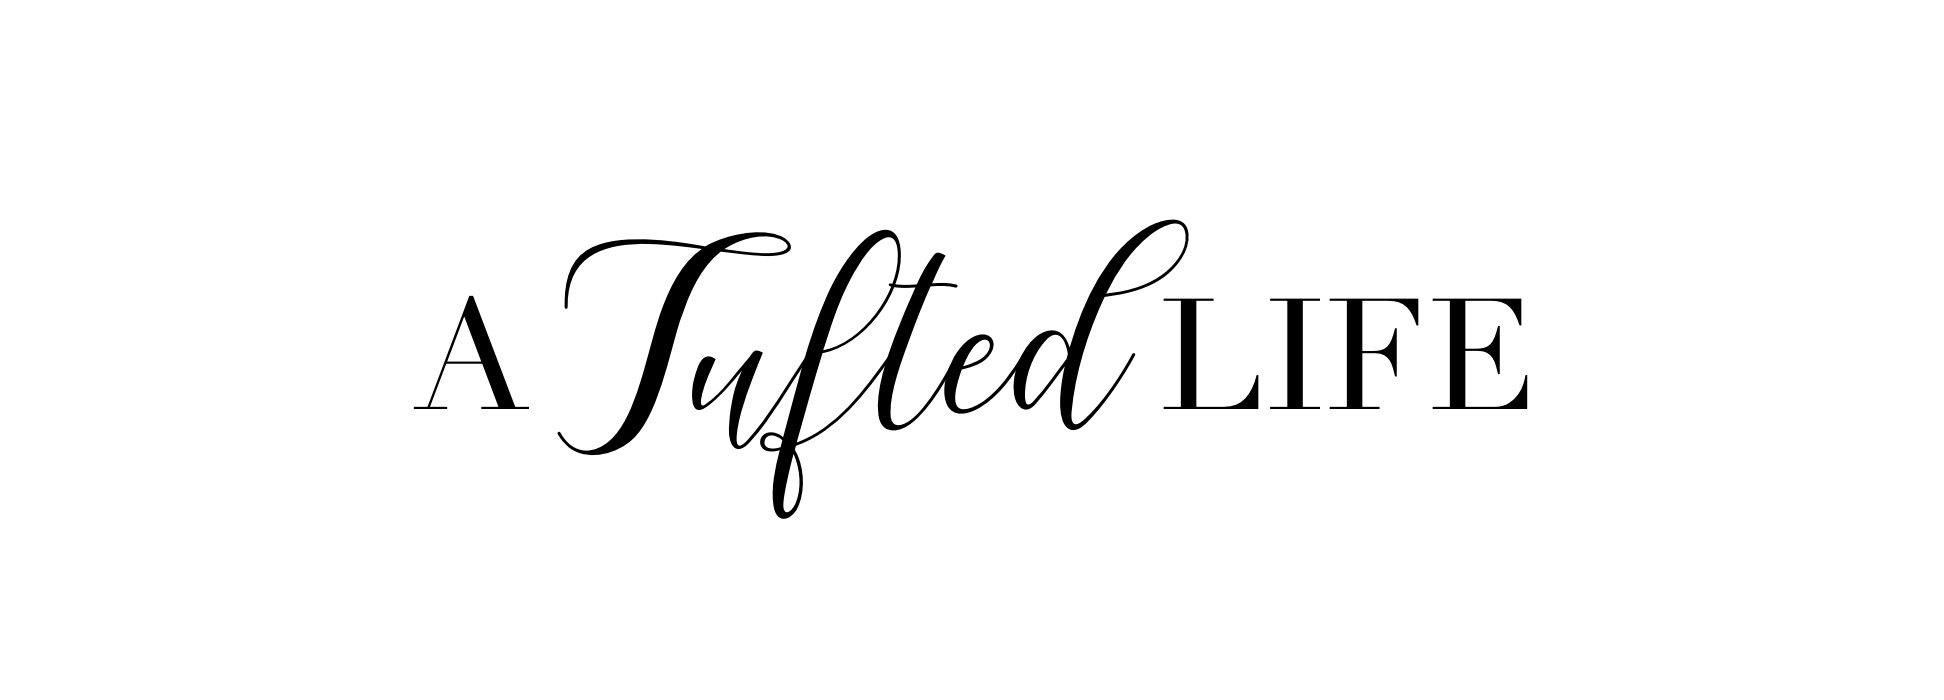 A Tufted Life